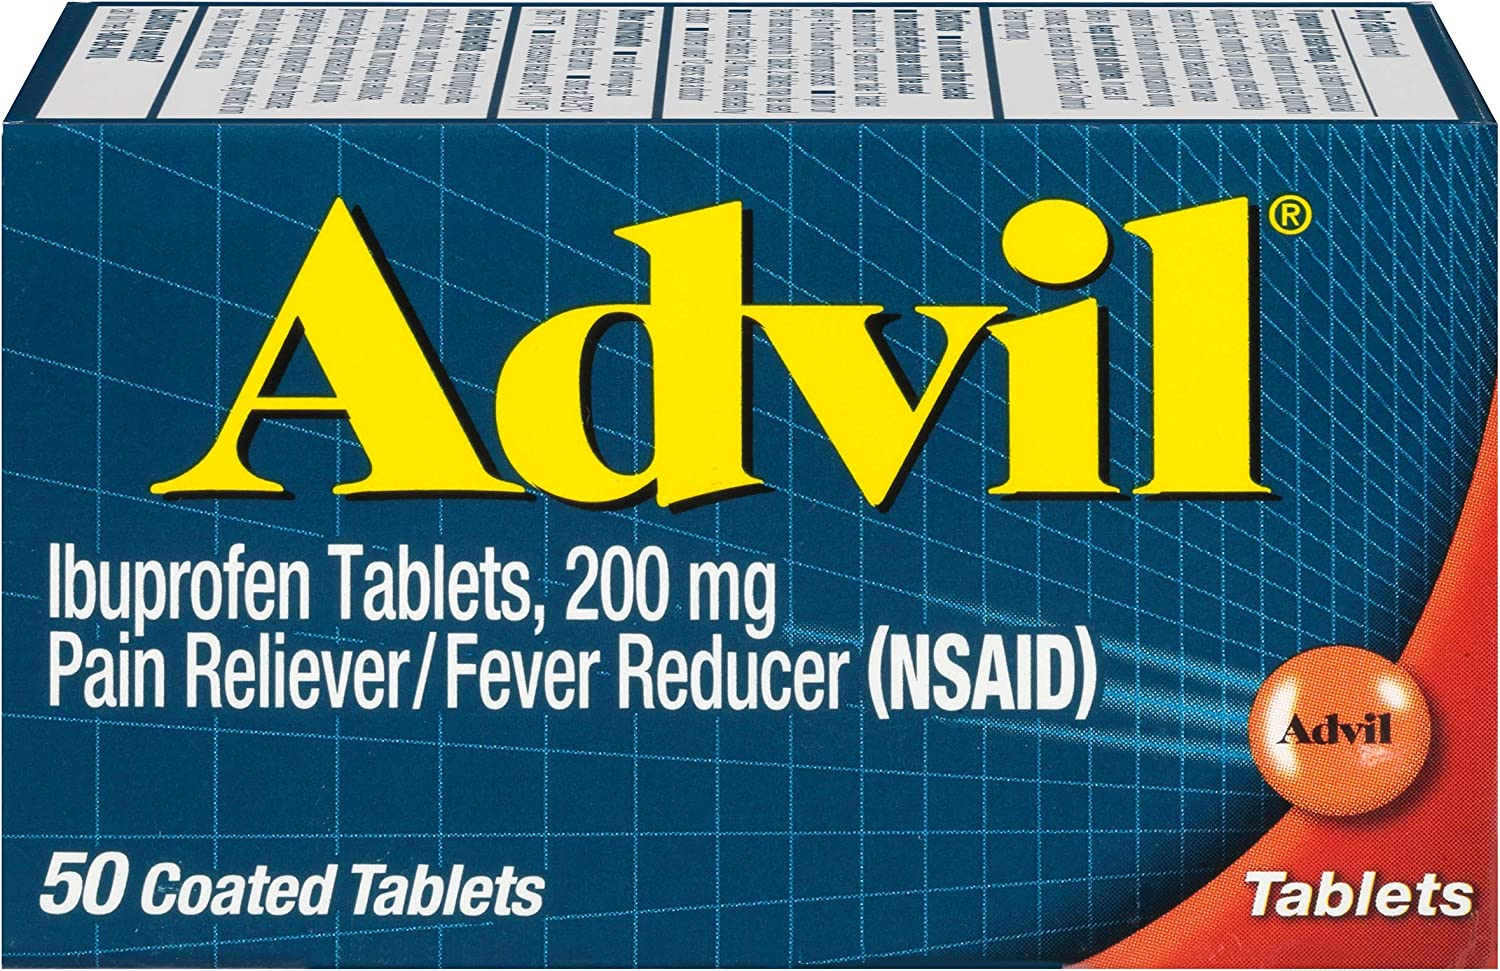 Advil Pain Oklahoma City Mall Reliever and Fever Medicine Max 54% OFF Relief with Reducer